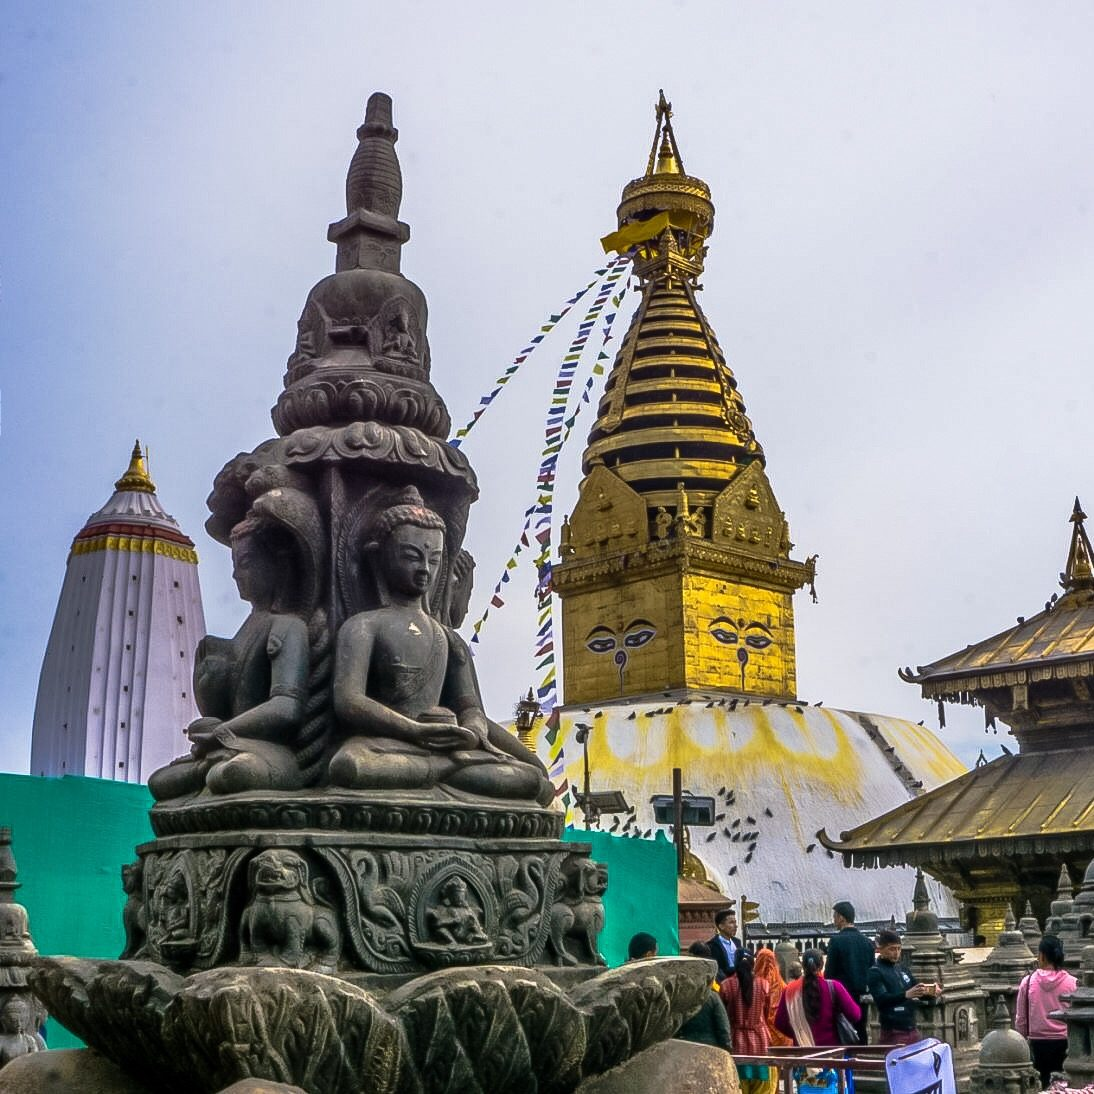 Photo by : Subhasini Location : Swayambhu, Nepal